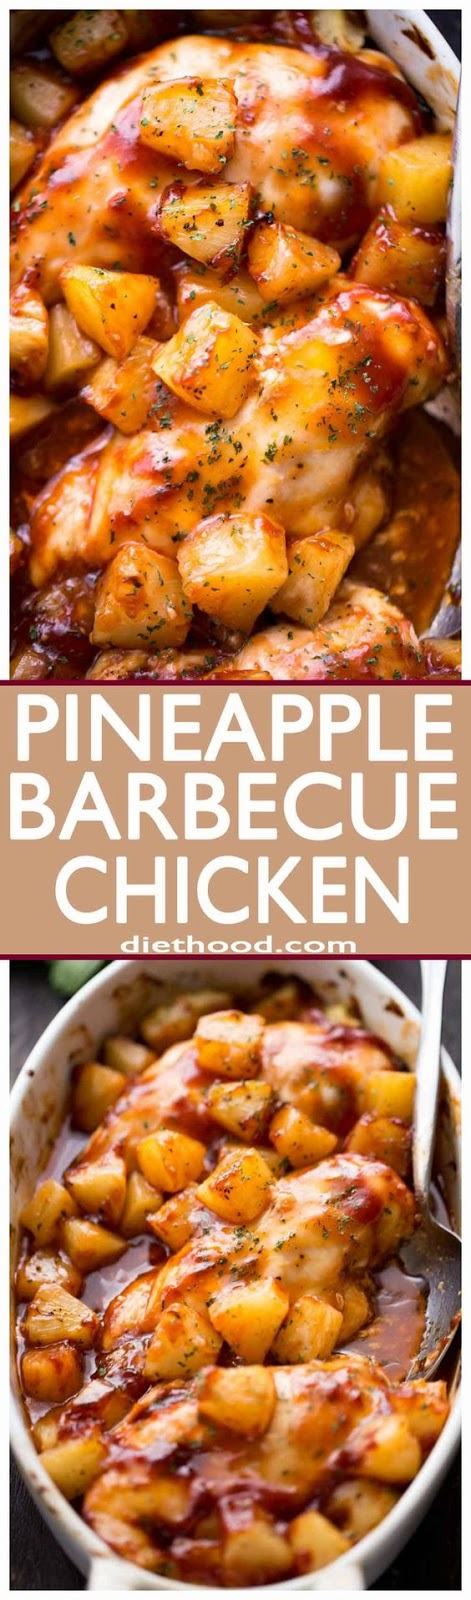 Pineapple Barbecue Chicken